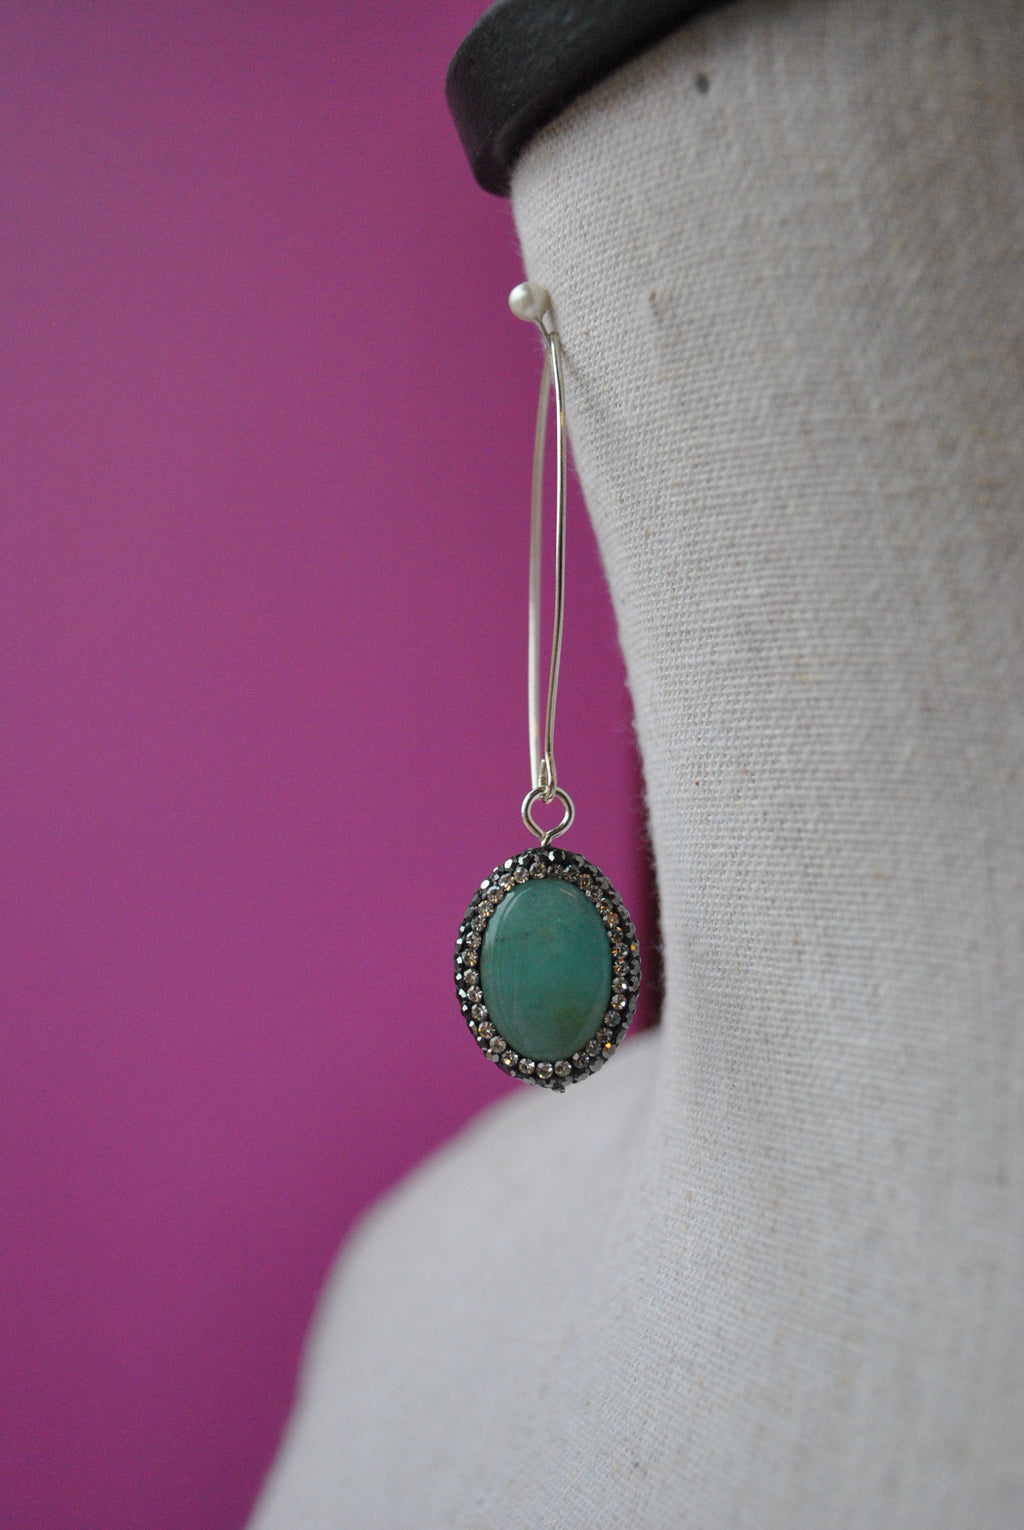 AMAZONITE AND SWAROVSKI CRYSTALS LONG EARRINGS